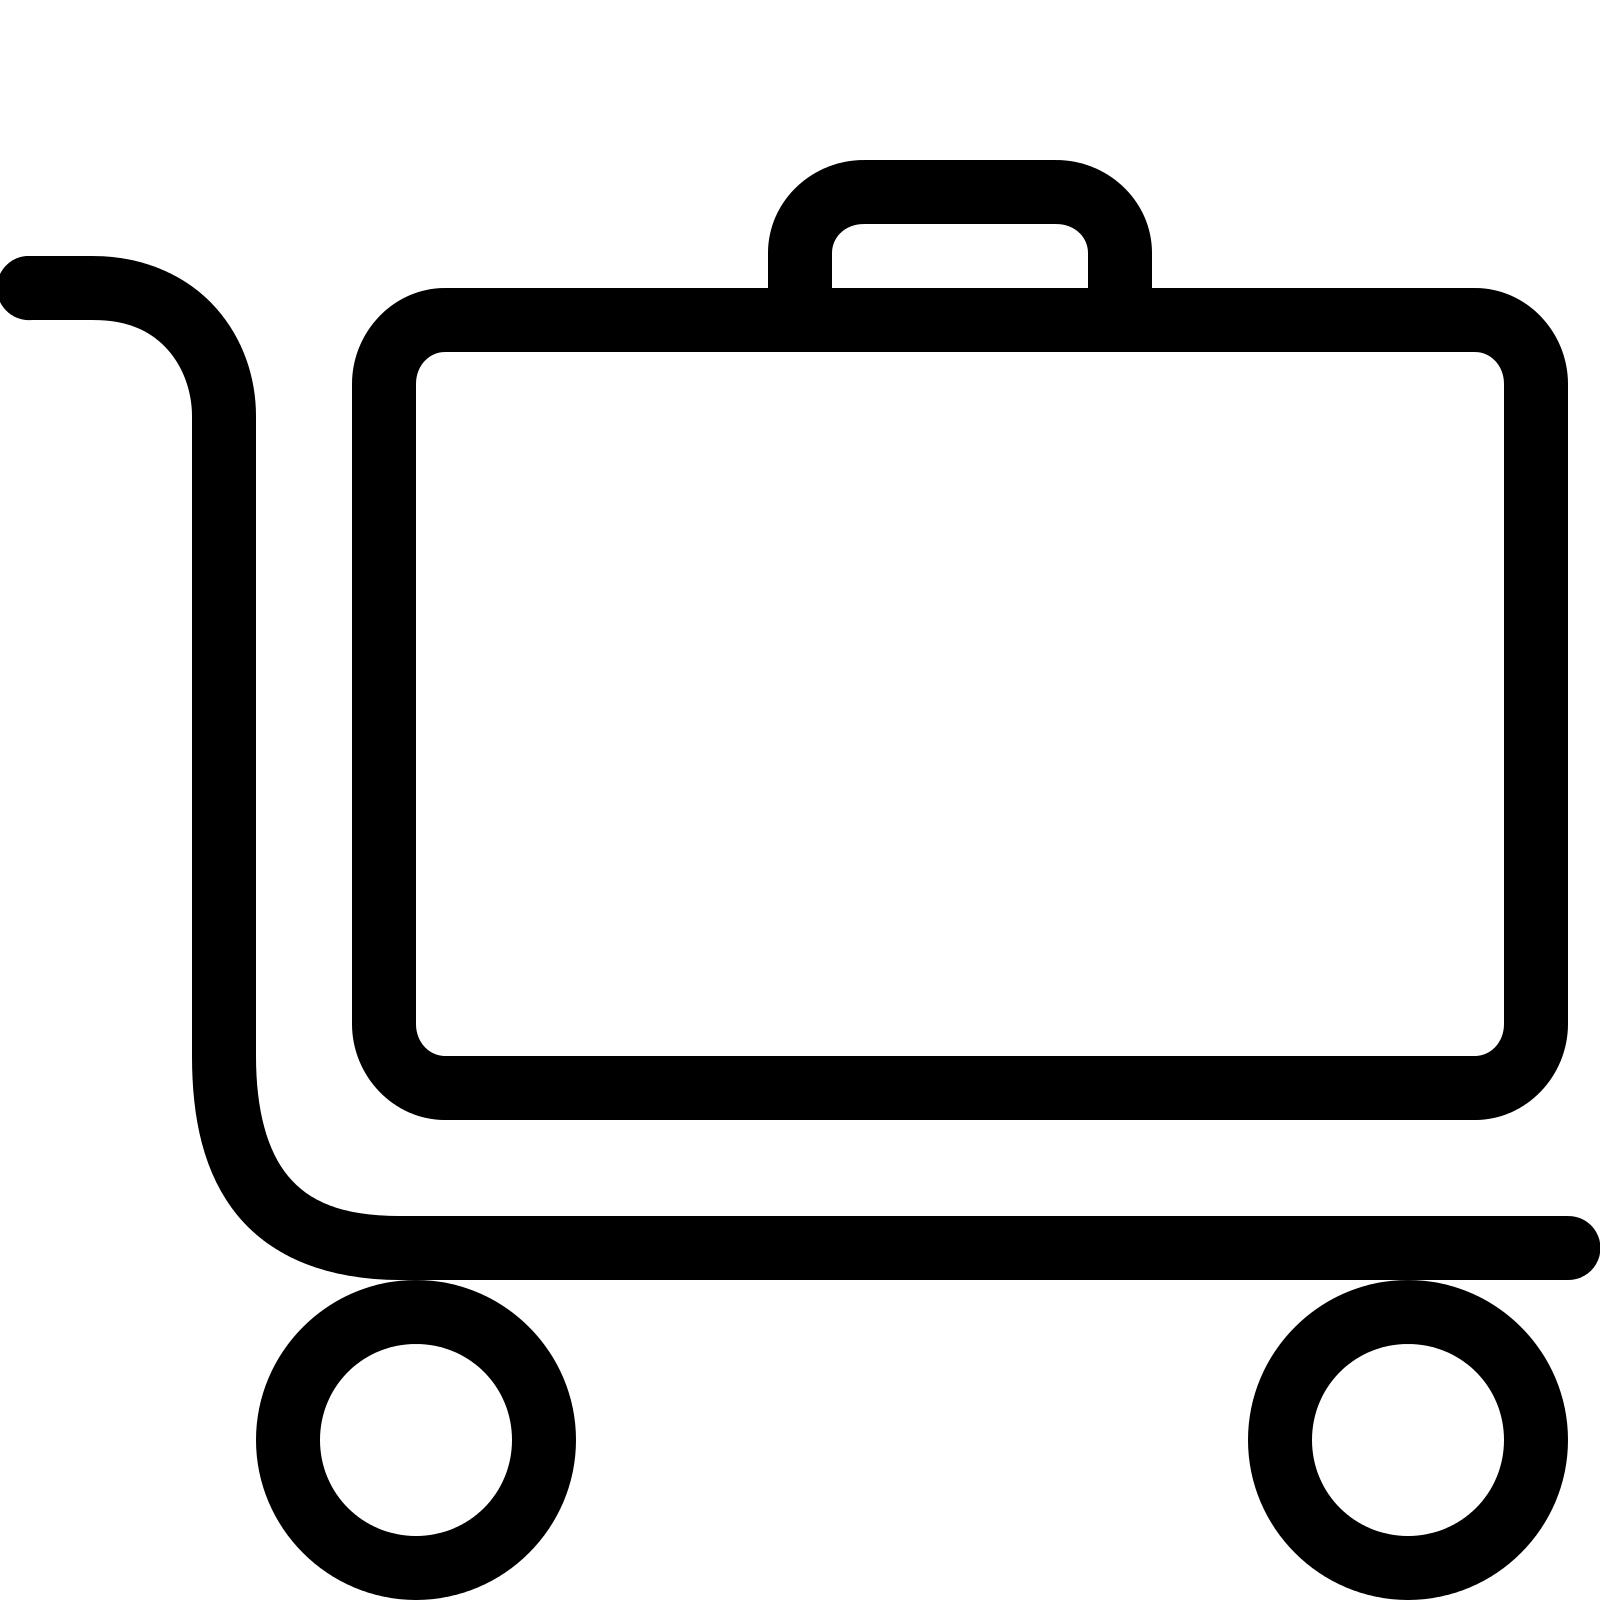 Trolley clipart icon Free icon Luggage SVG Icon